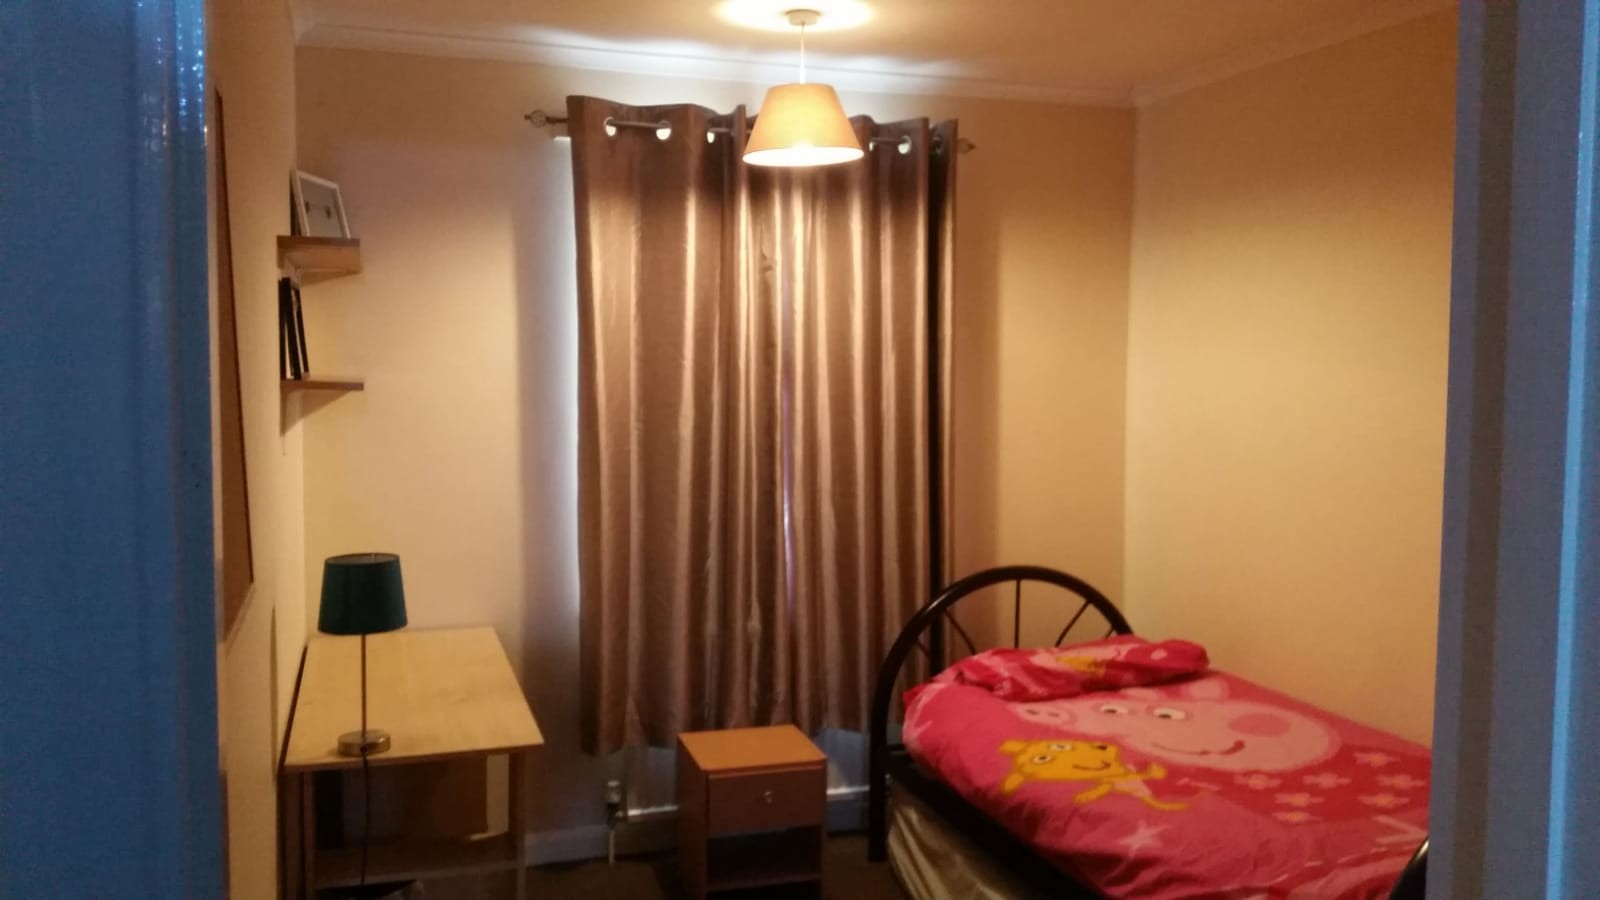 Good size single room with wardrobe, desk, drawers and side tabl